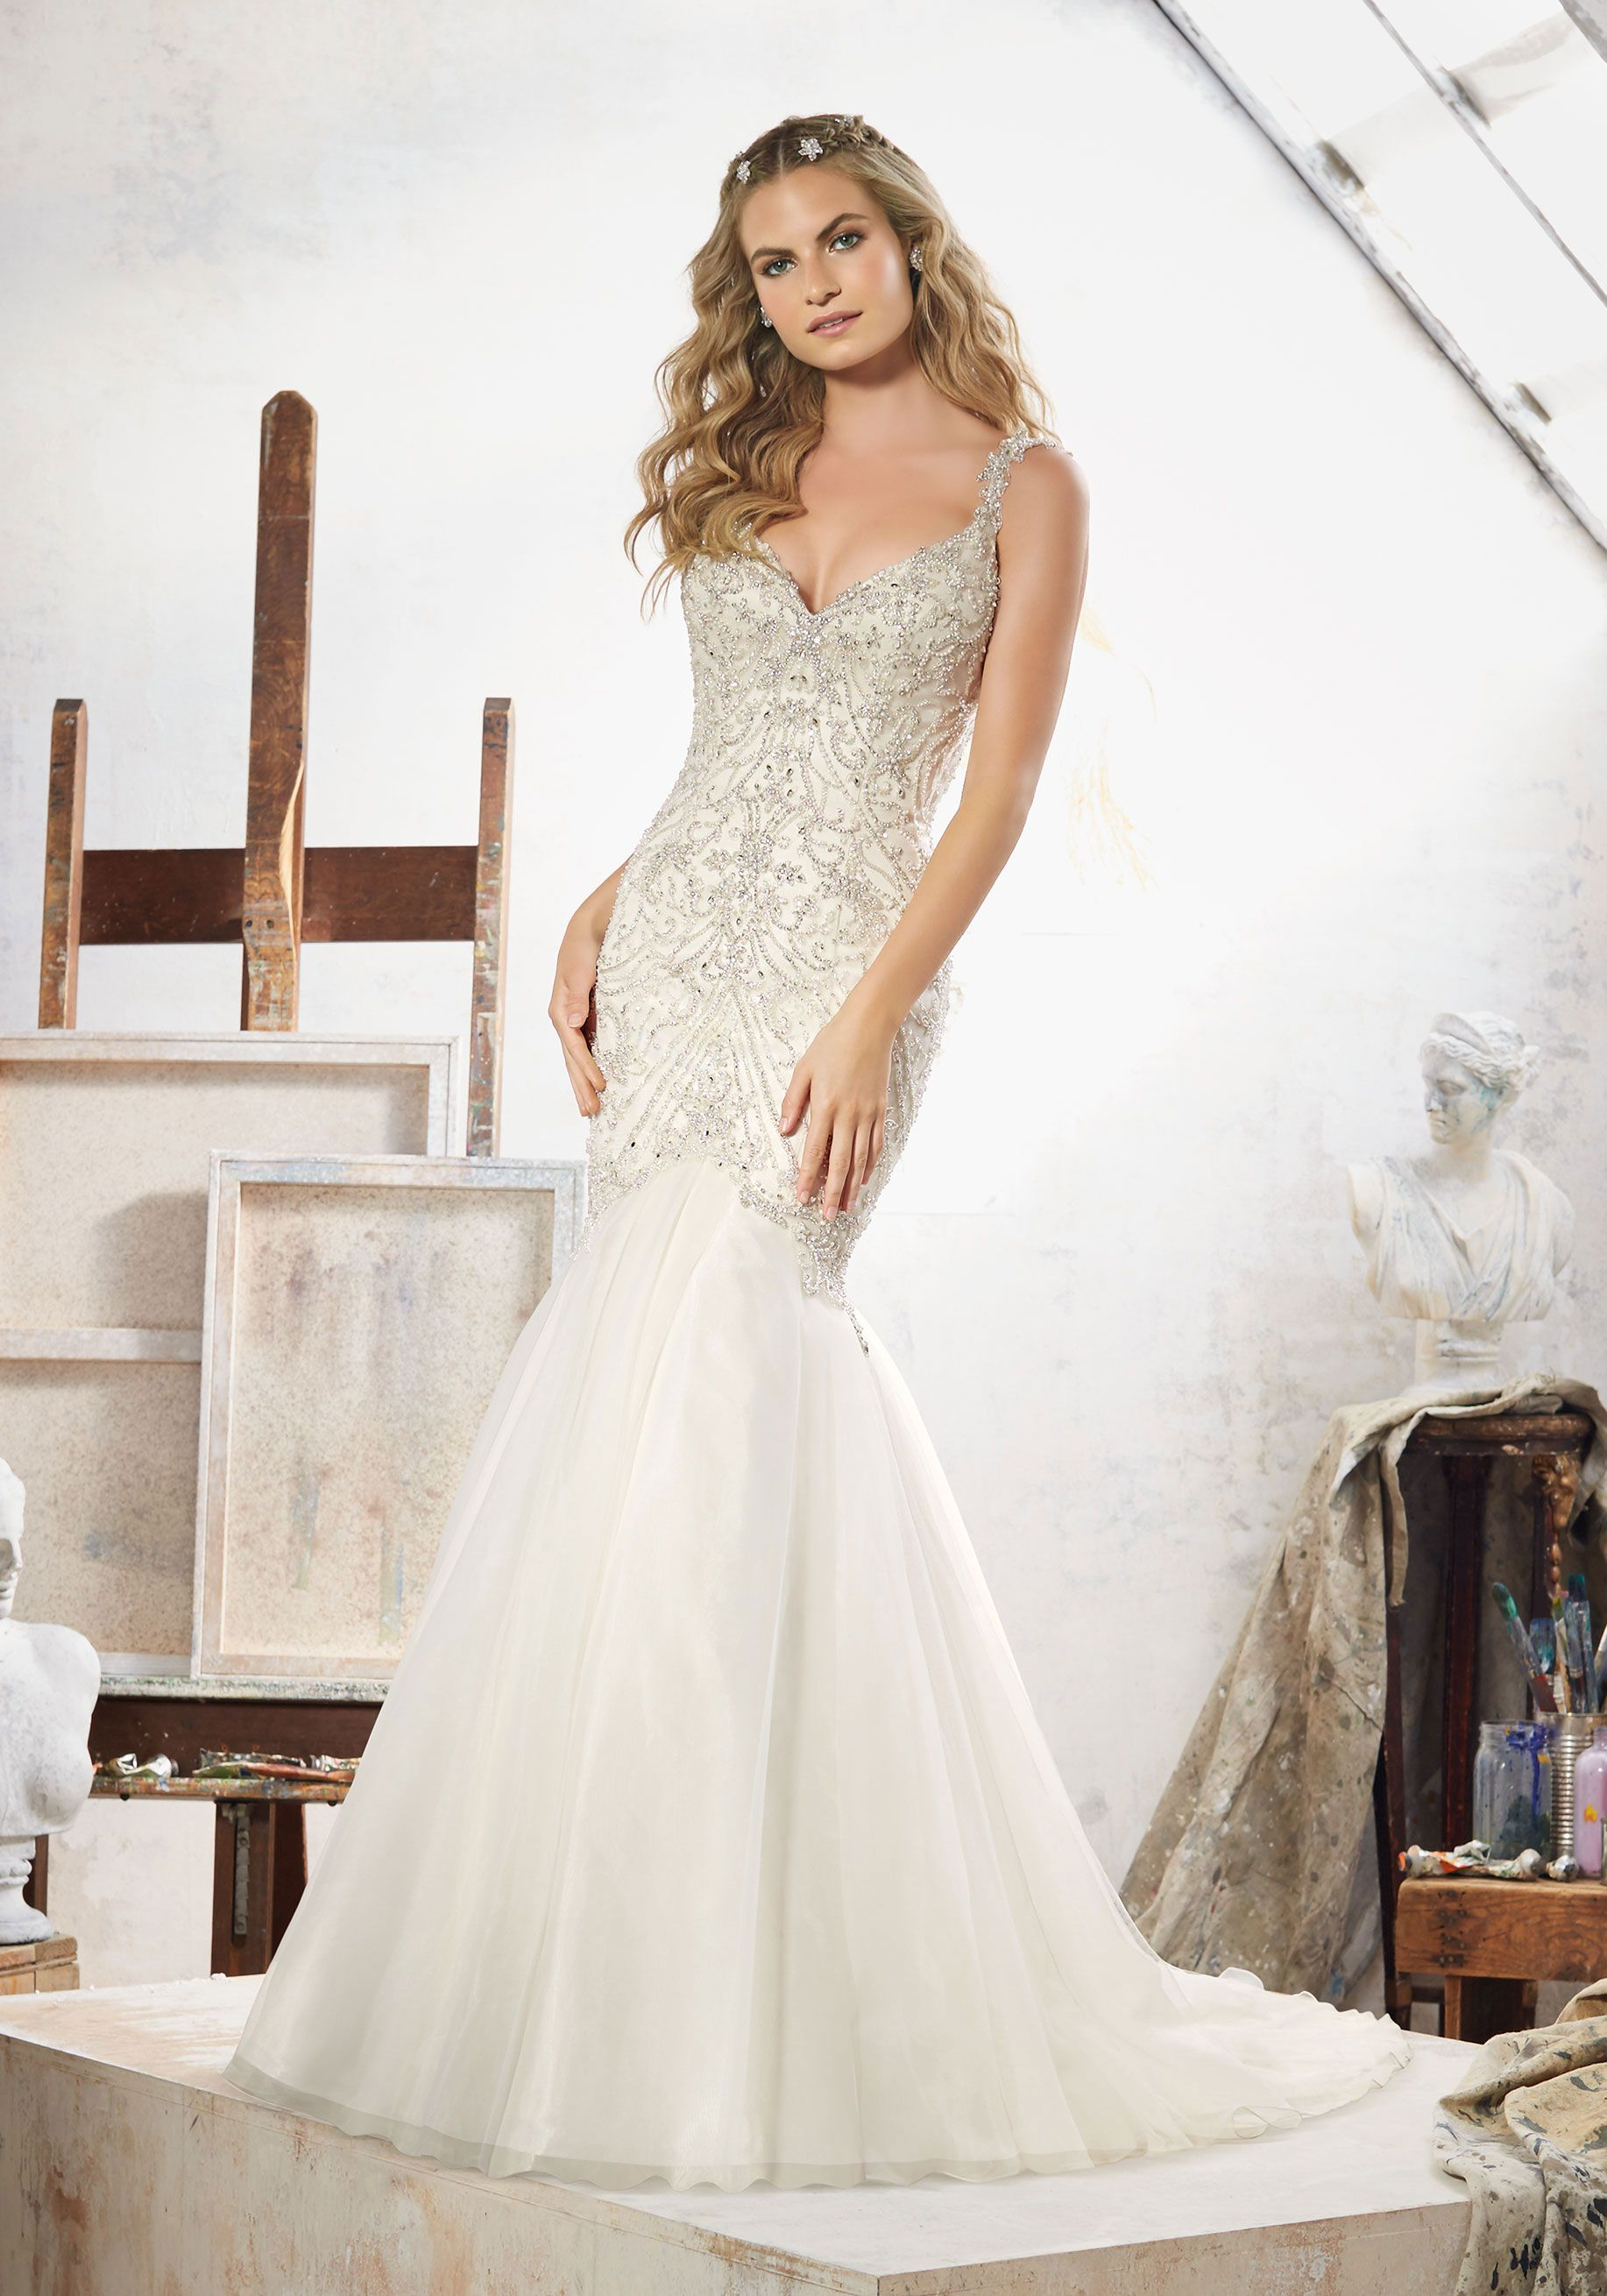 b3c71410af4ee Morilee by Madeline Gardner 'Maeve' 8107 | Glamorous Fit & Flare Wedding  Dress Featuring Crystal Beaded Embroidery on Tulle. The Dramatic Open Back  is ...